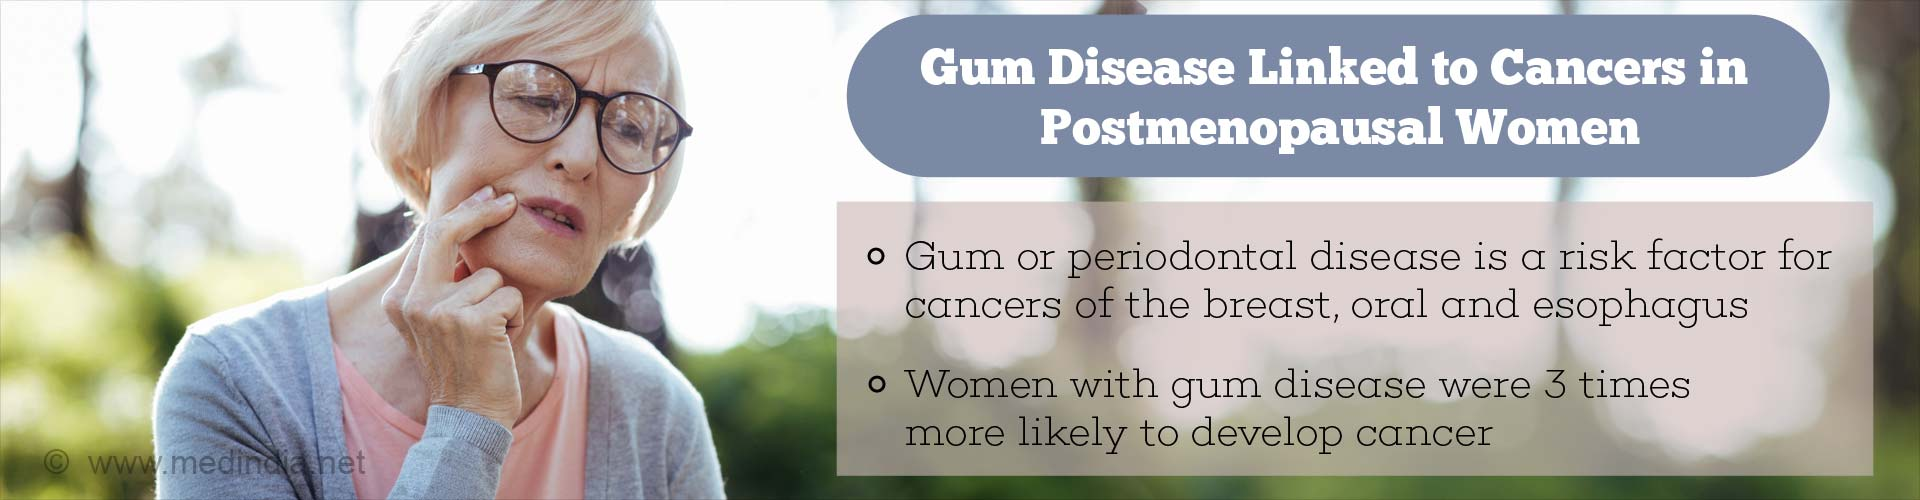 Gum disease linked to cancers in postmenopausal women